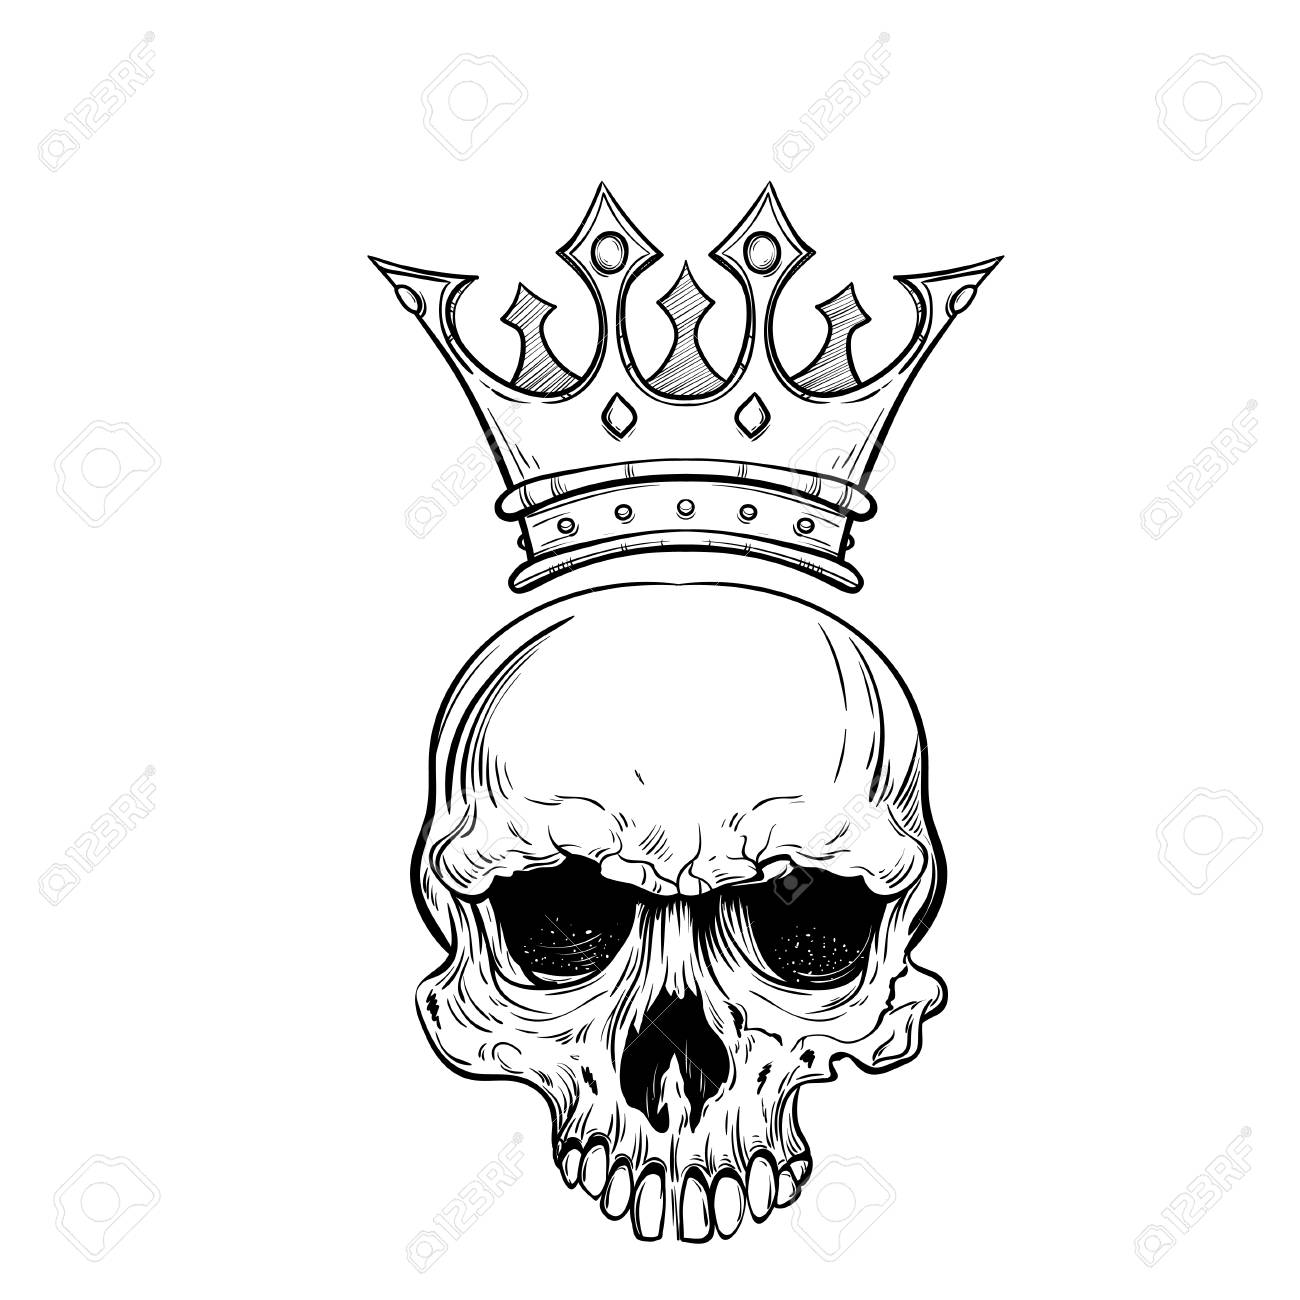 hand drawn sketch skull with crown royalty free cliparts vectors